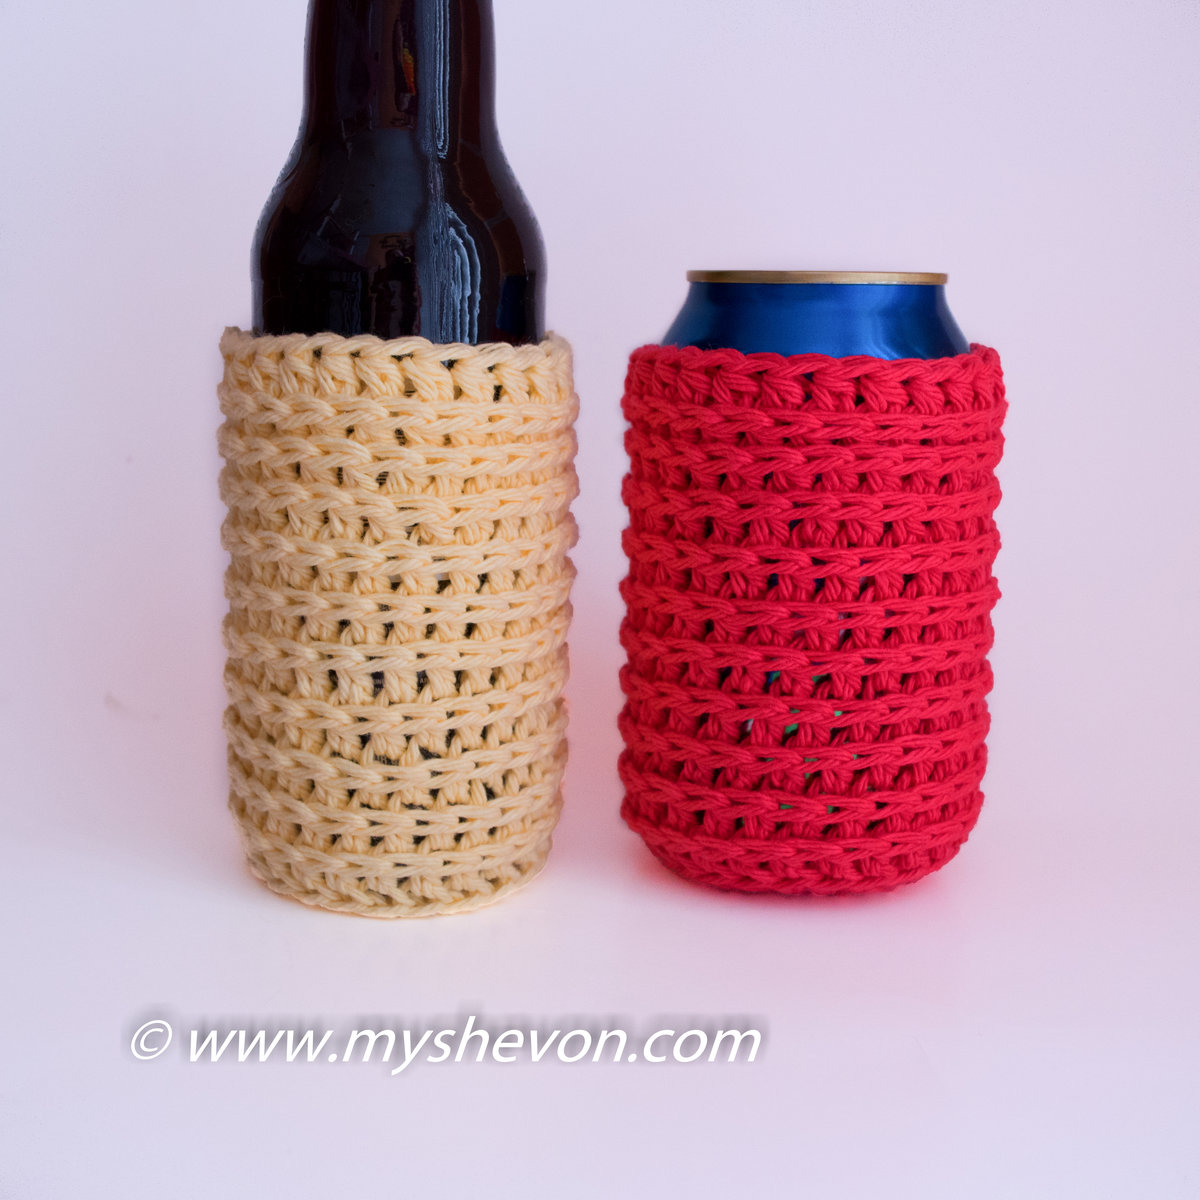 Crochet Can and Bottle Cozy